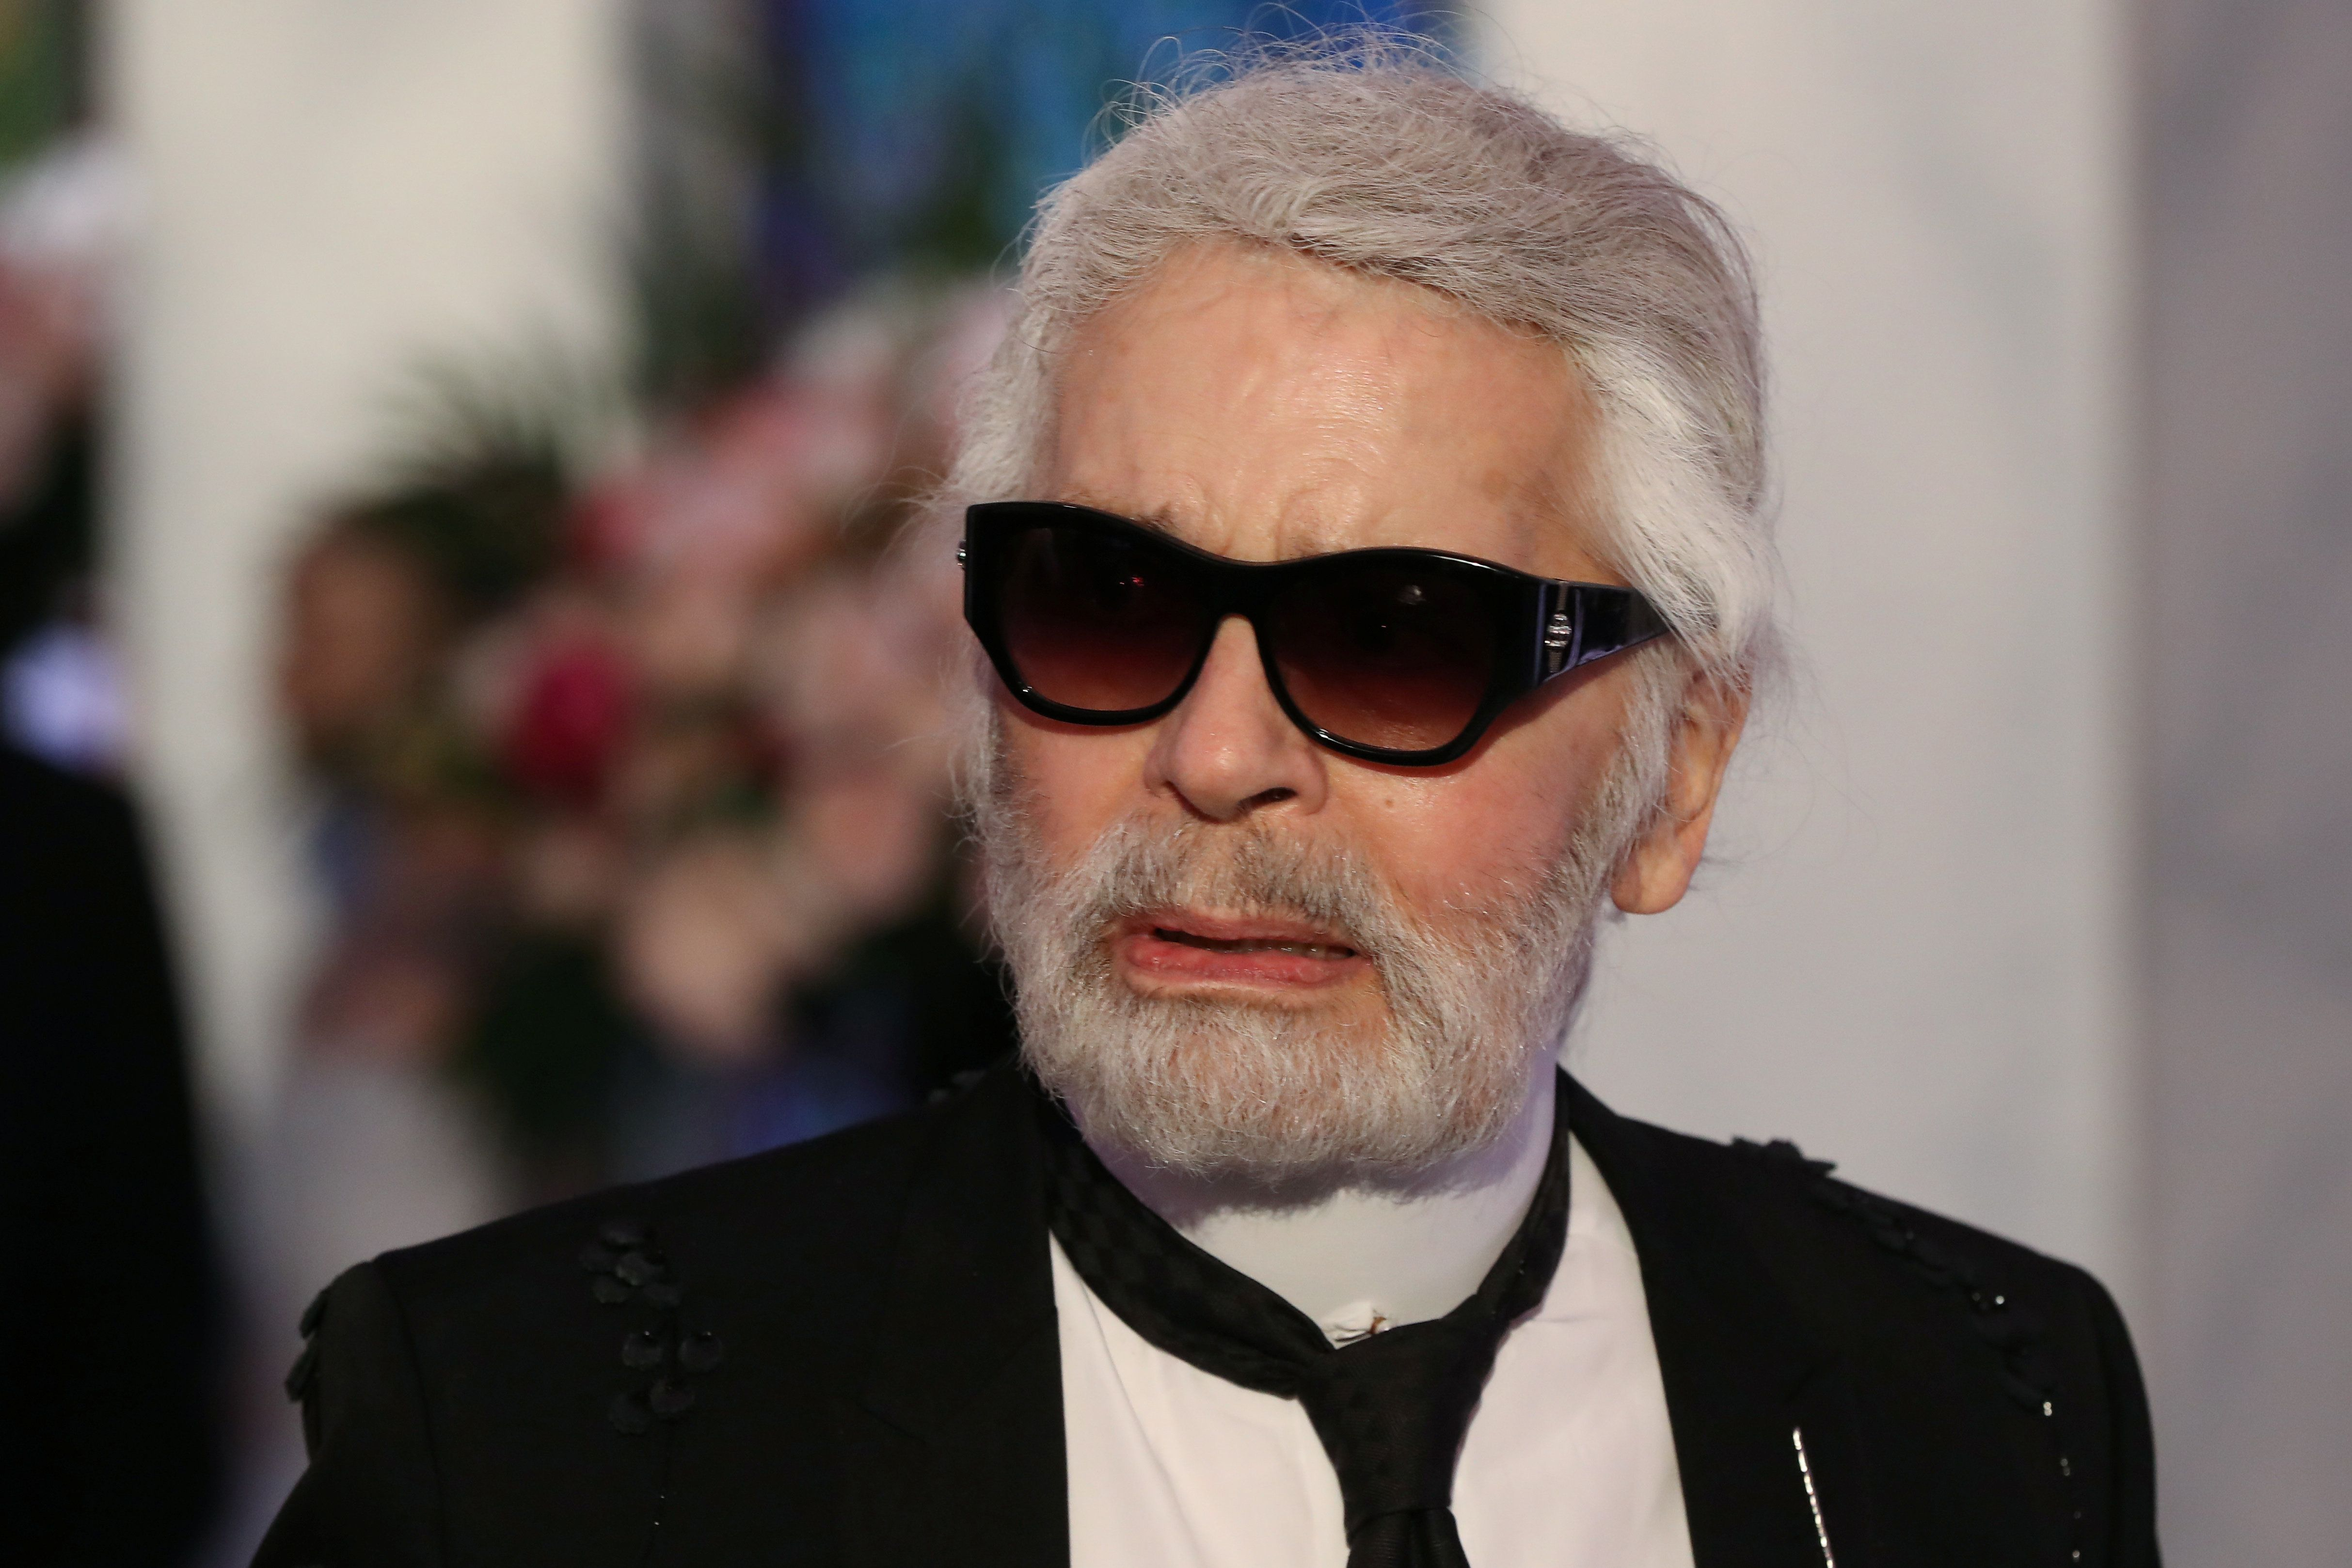 German fashion designer Karl Lagerfeld arrives for the annual Rose Ball at the Monte-Carlo Sporting Club in Monaco, March 24, 2018. Picture taken March 24, 2018. Valery Hache/Pool via Reuters